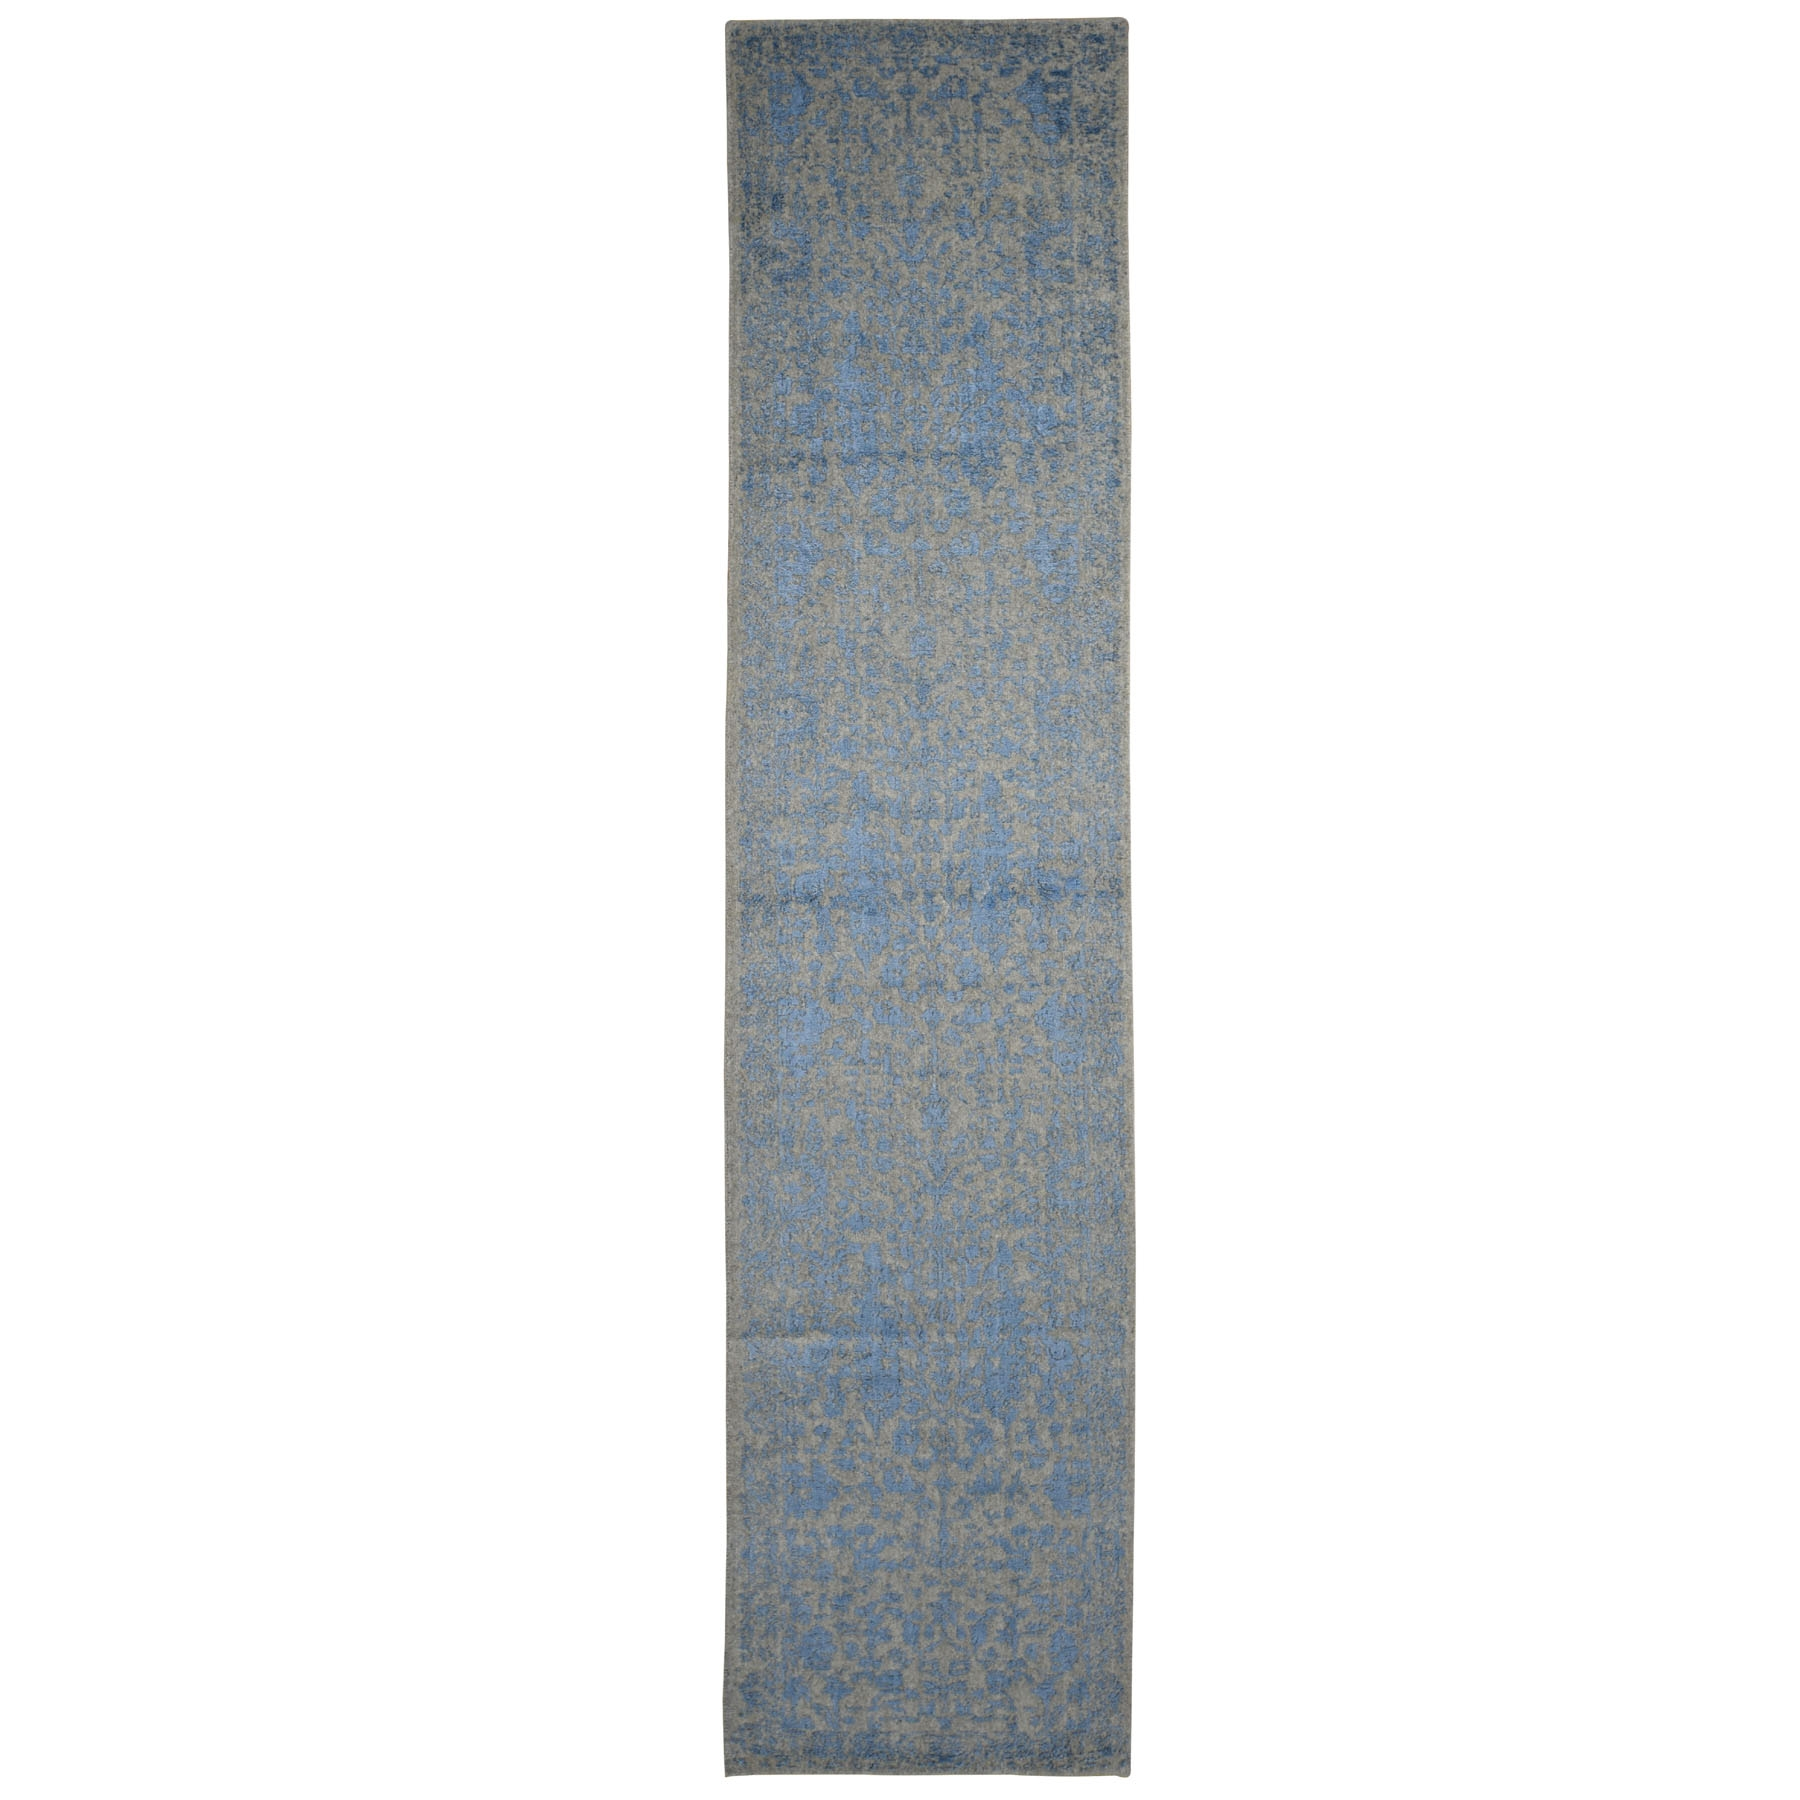 "2'6""X12'2"" Jacquard Hand Loomed Blue Broken Cypress Tree Design Silken Thick And Plush Runner Oriental Rug moa"